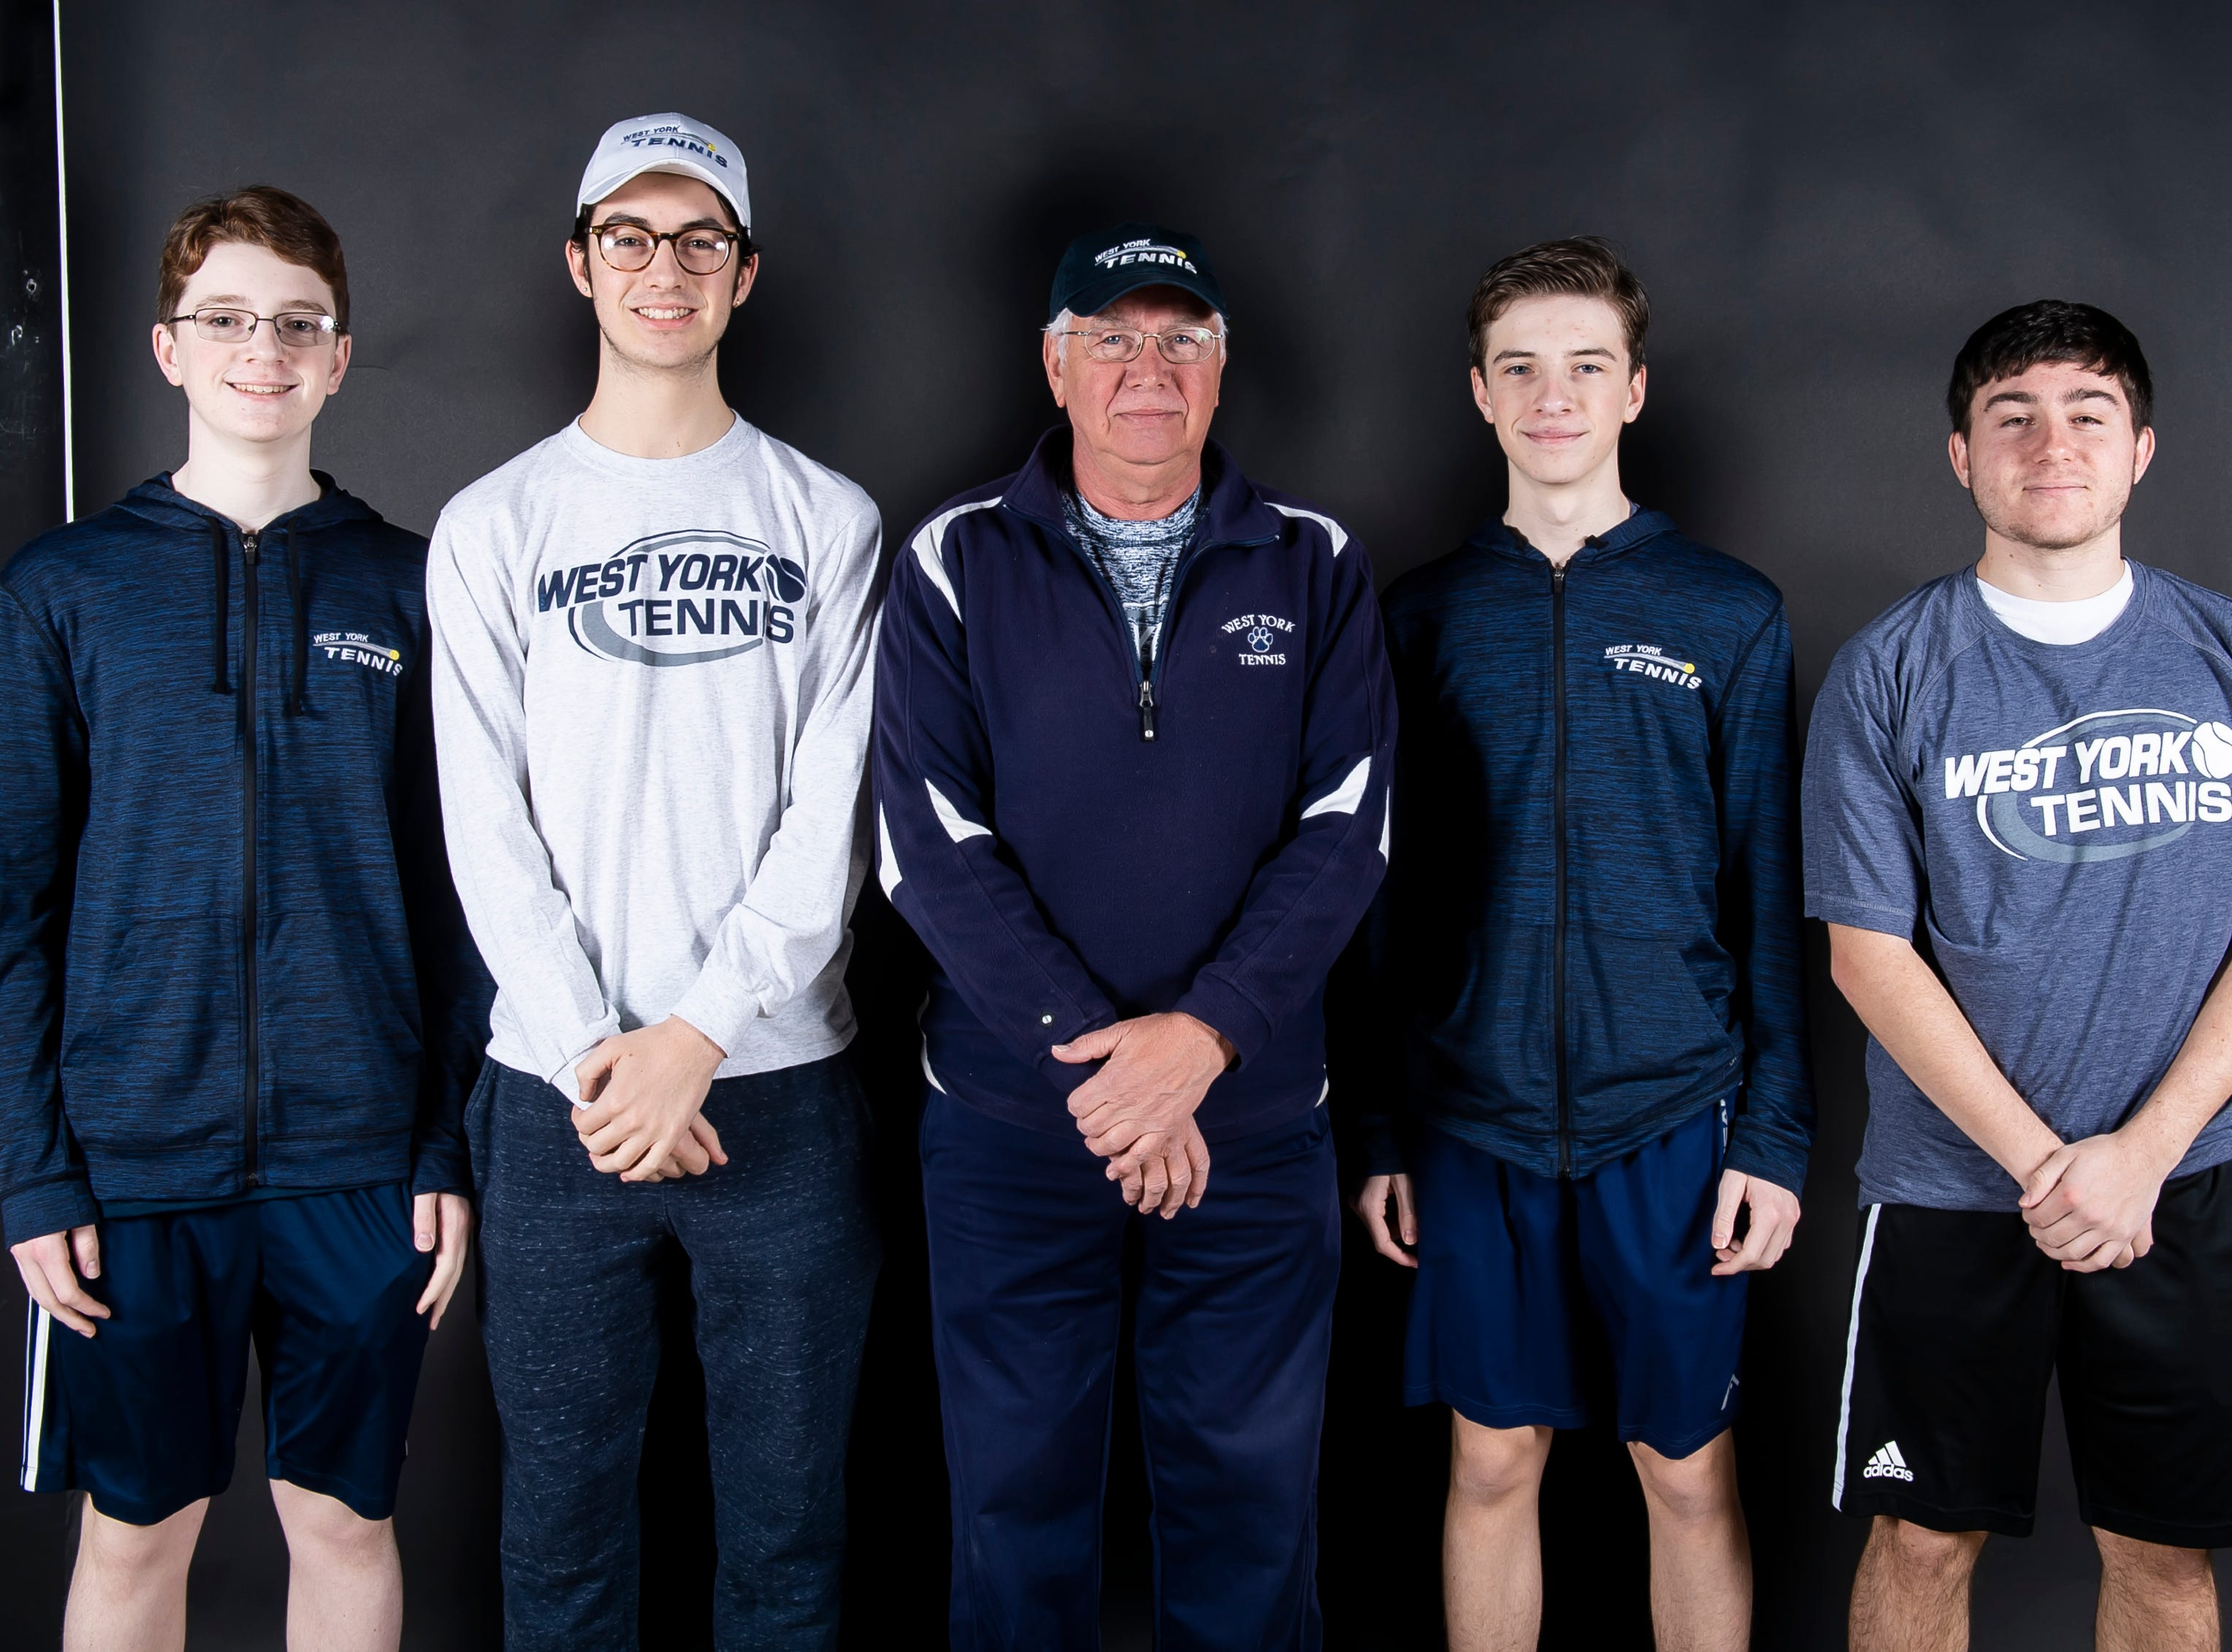 (From left) West York tennis team's Jack Citrone, Brendan Guy, coach Pete Kerns, Augie Citrone and Griffin Conaway pose in the GameTimePA photo booth during spring sports media day in York Sunday, March 10, 2019.